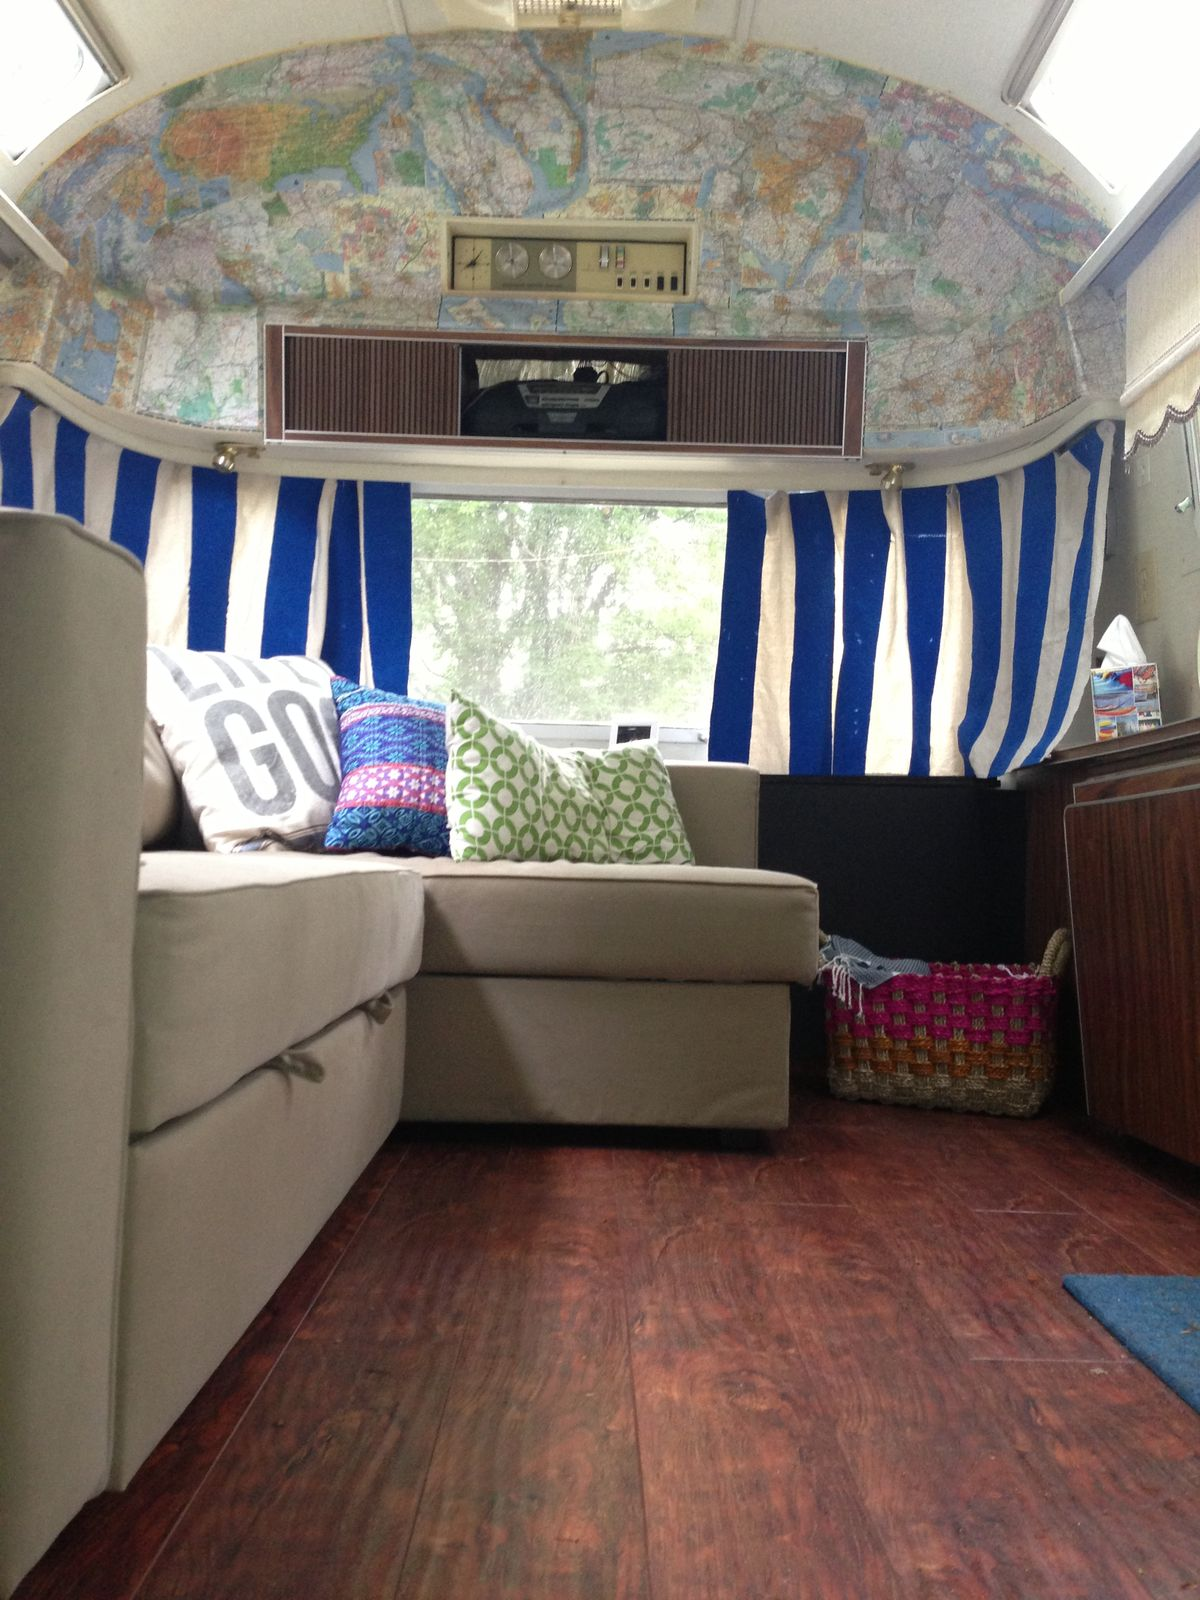 Ikea Sofa Allergie 1000 43 Images About Airstream Ing On Pinterest Airstream